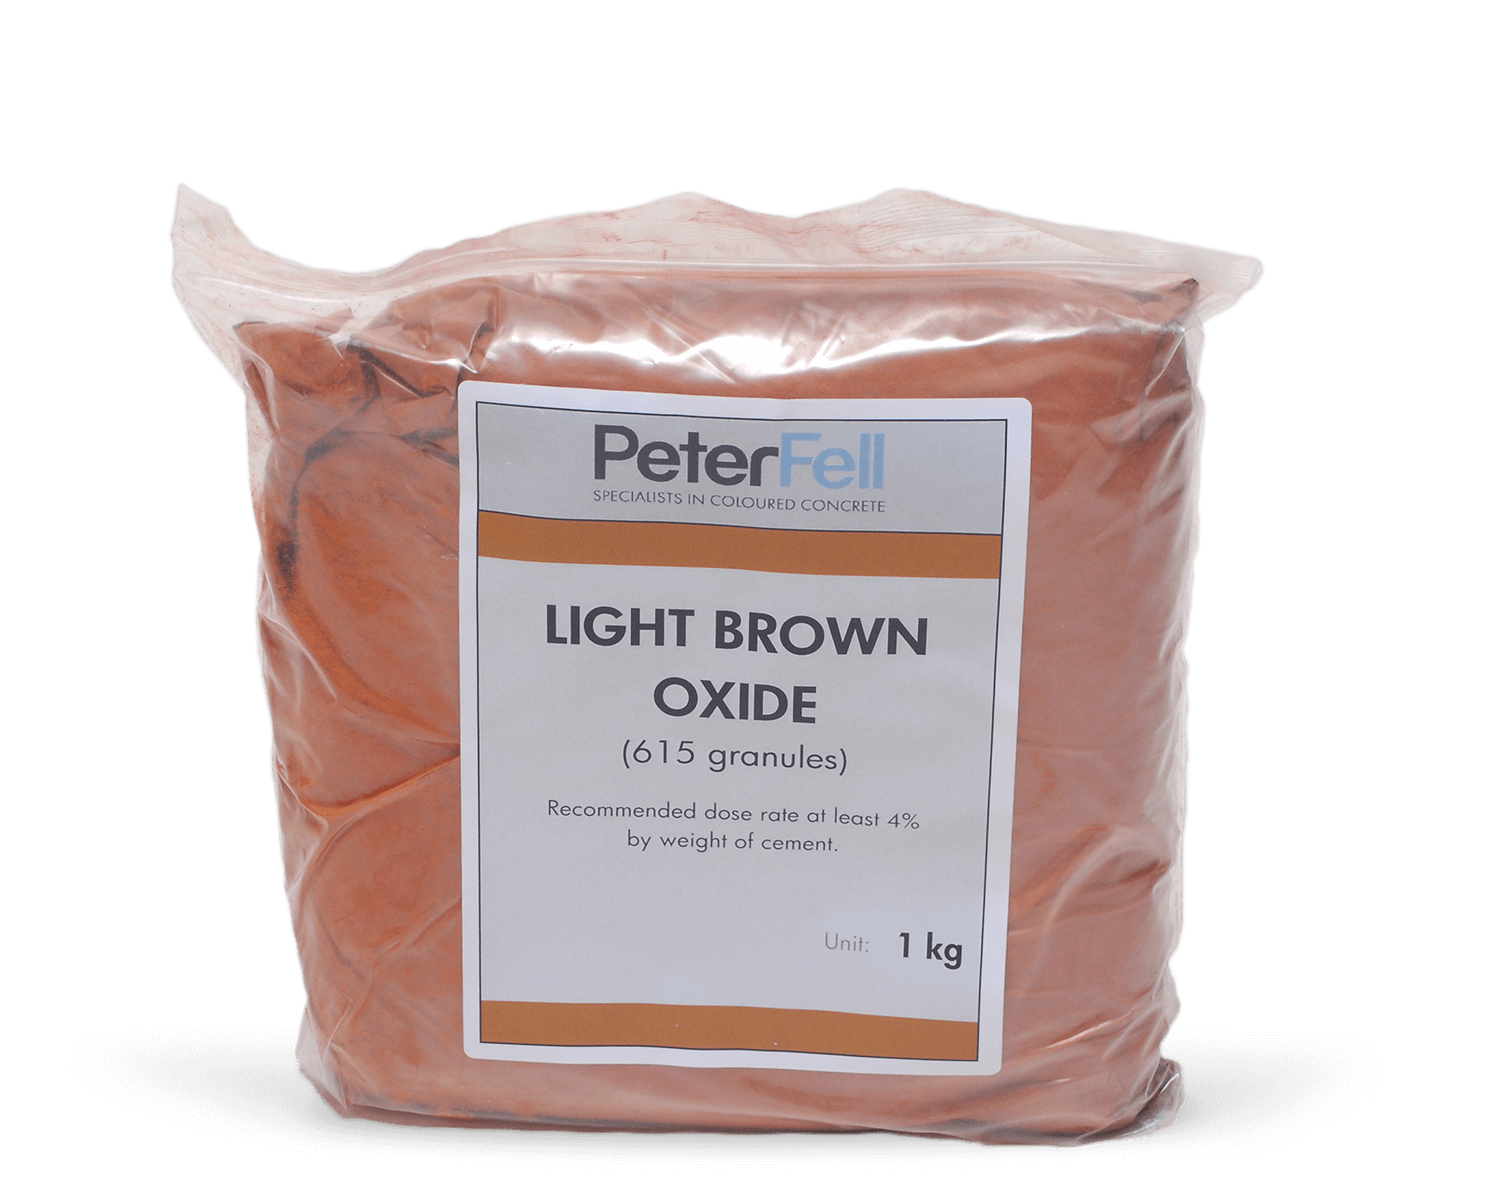 Light Brown Oxide for colouring concrete